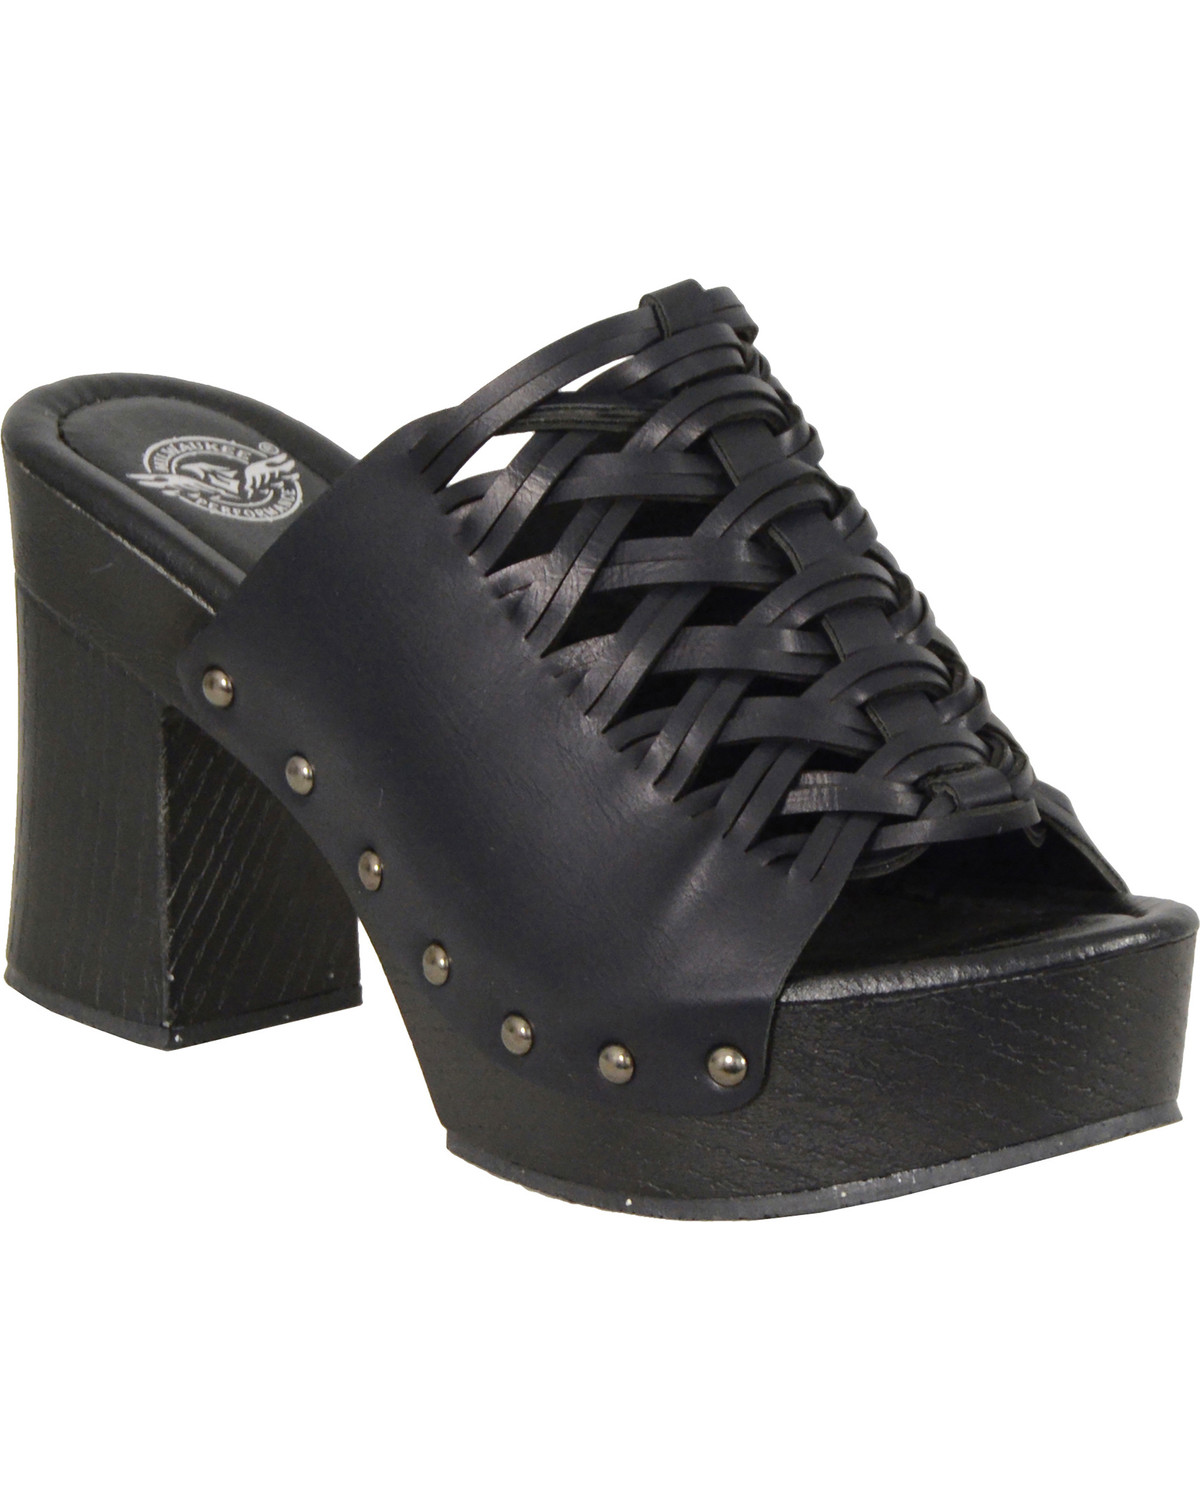 40c48e9ff4a Milwaukee Leather Women s Black Studded Lace Top Platform Shoes ...